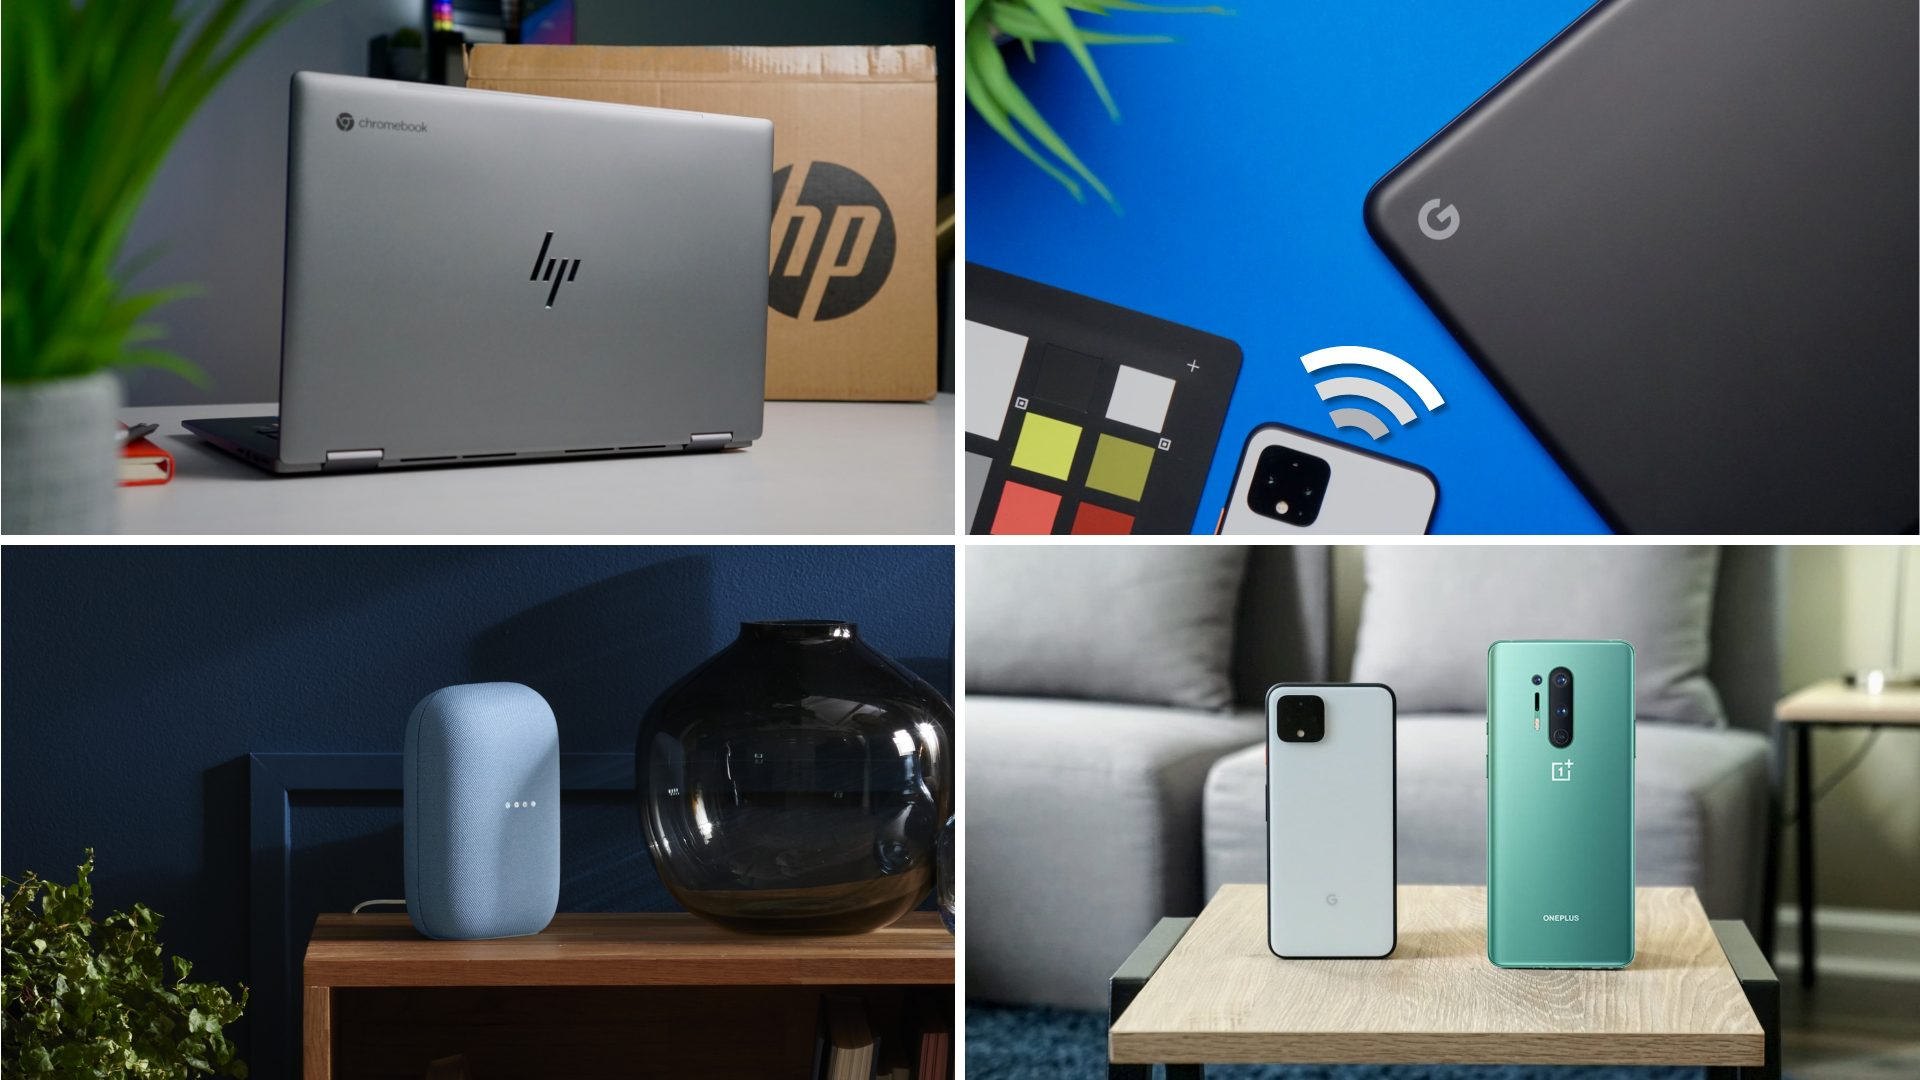 Top Stories This Week: HP x360 14c unboxed and on sale, Steam on Chrome OS, new Google Home & more